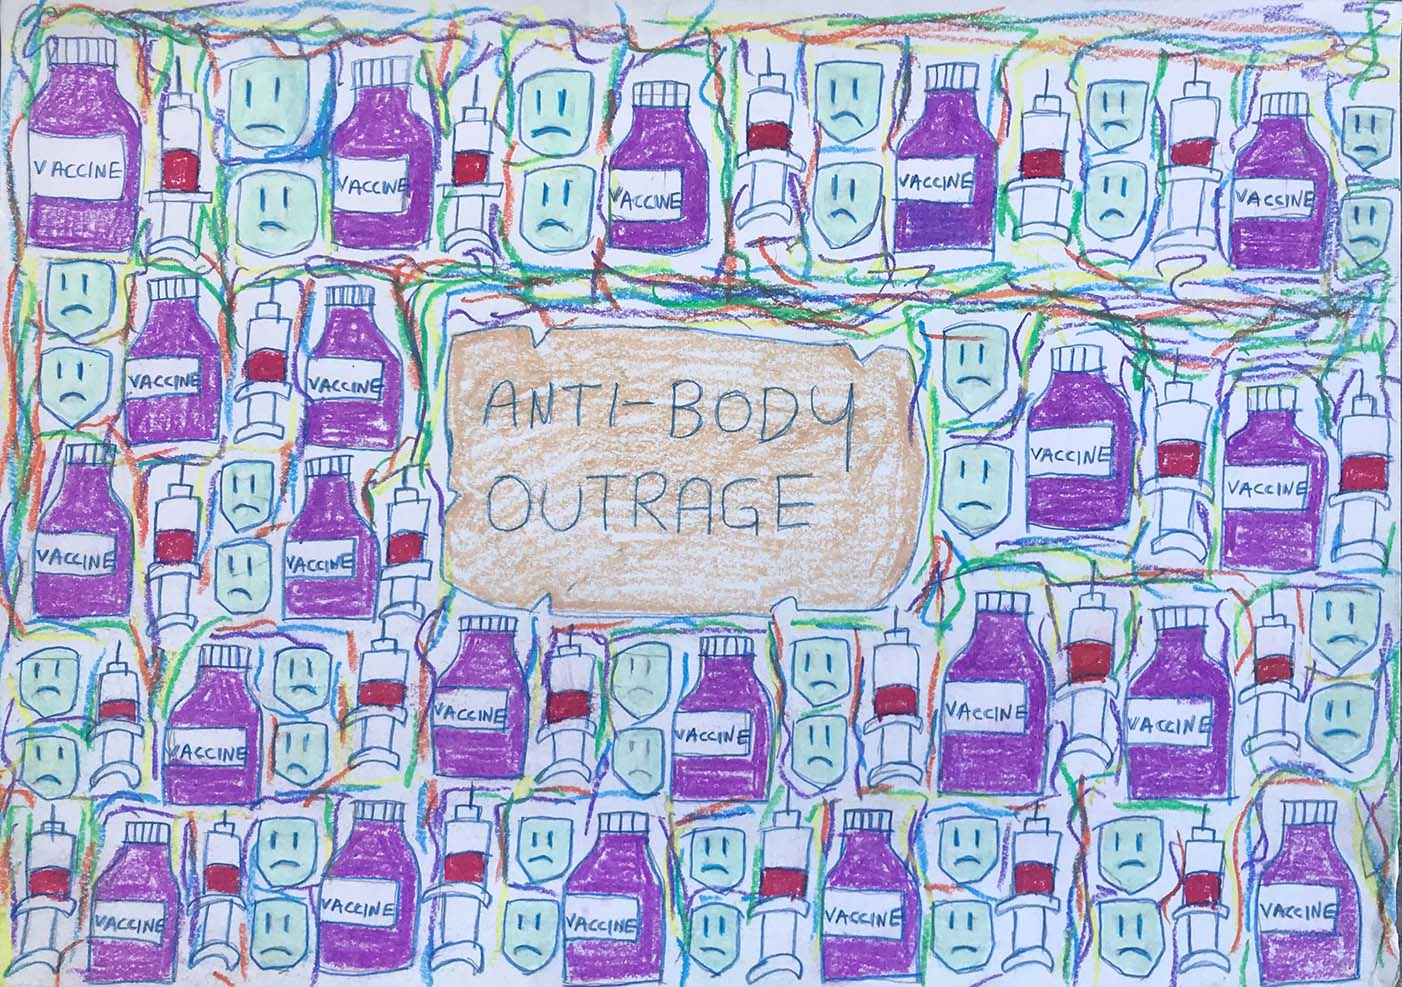 Anit-Body outrage